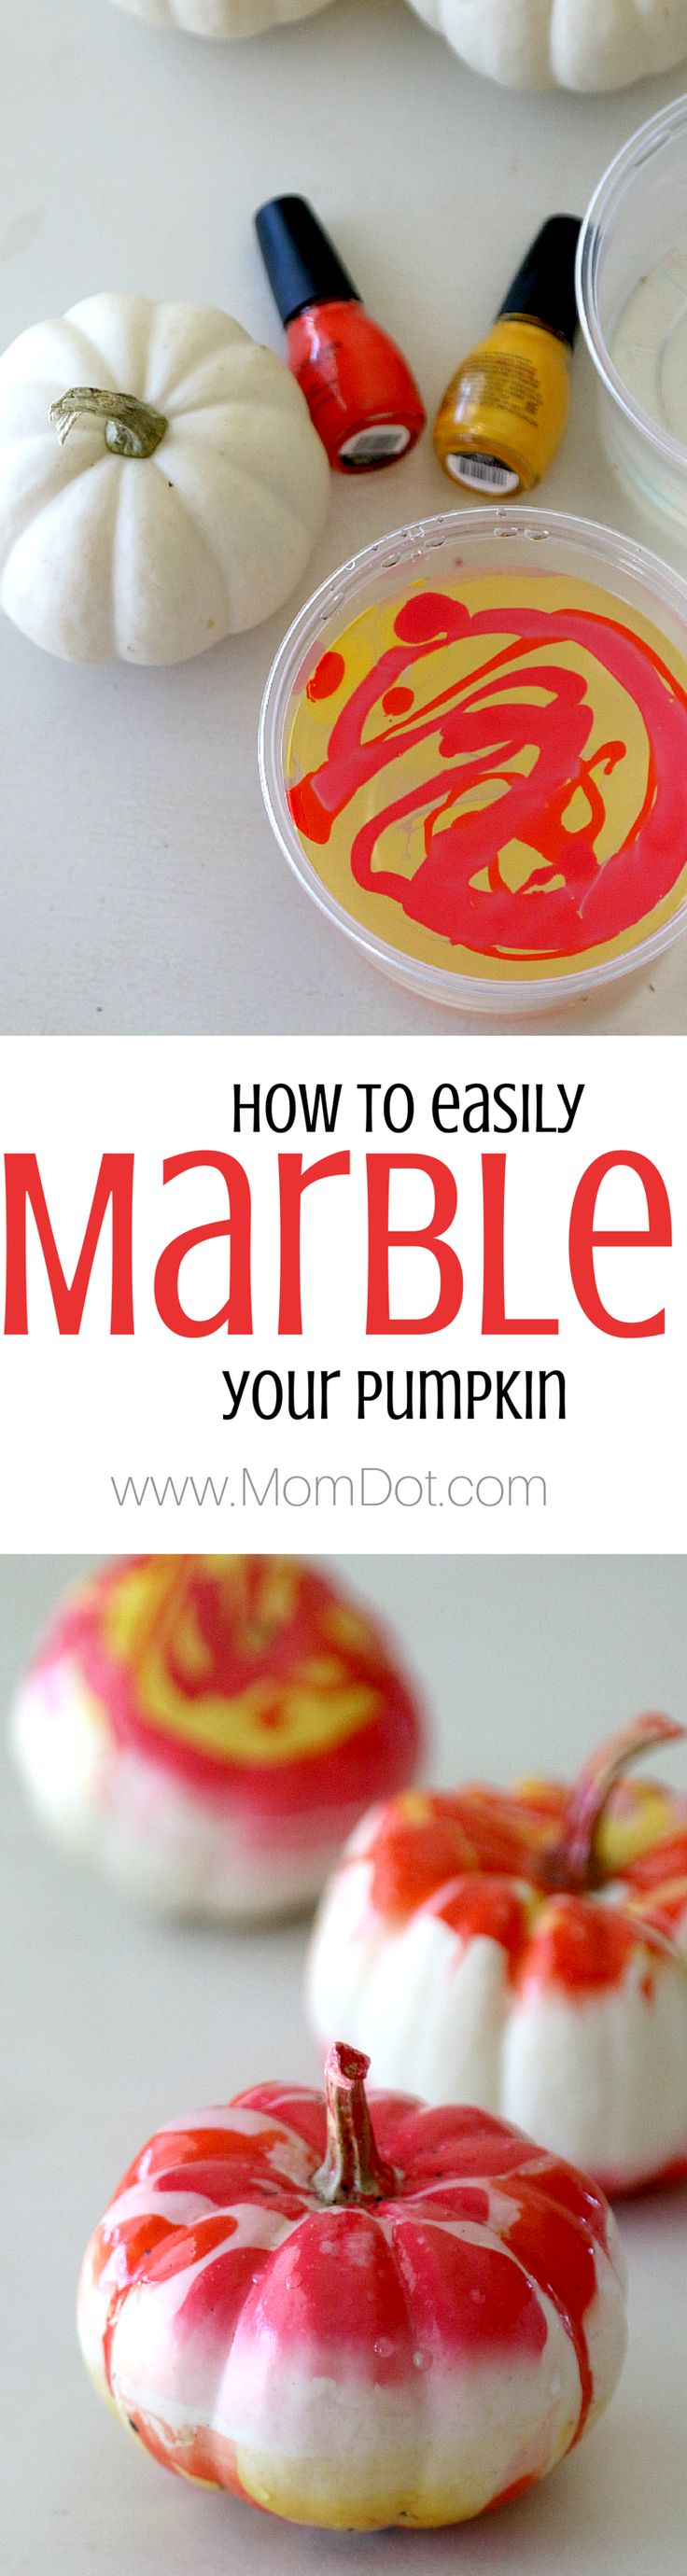 Marbling a pumpkin, perfectly easy for all holiday fall decor and personalize to pick your own statement colors! Love this thanksgiving and winter craft, inexpensive and forgiving craft, DIY!